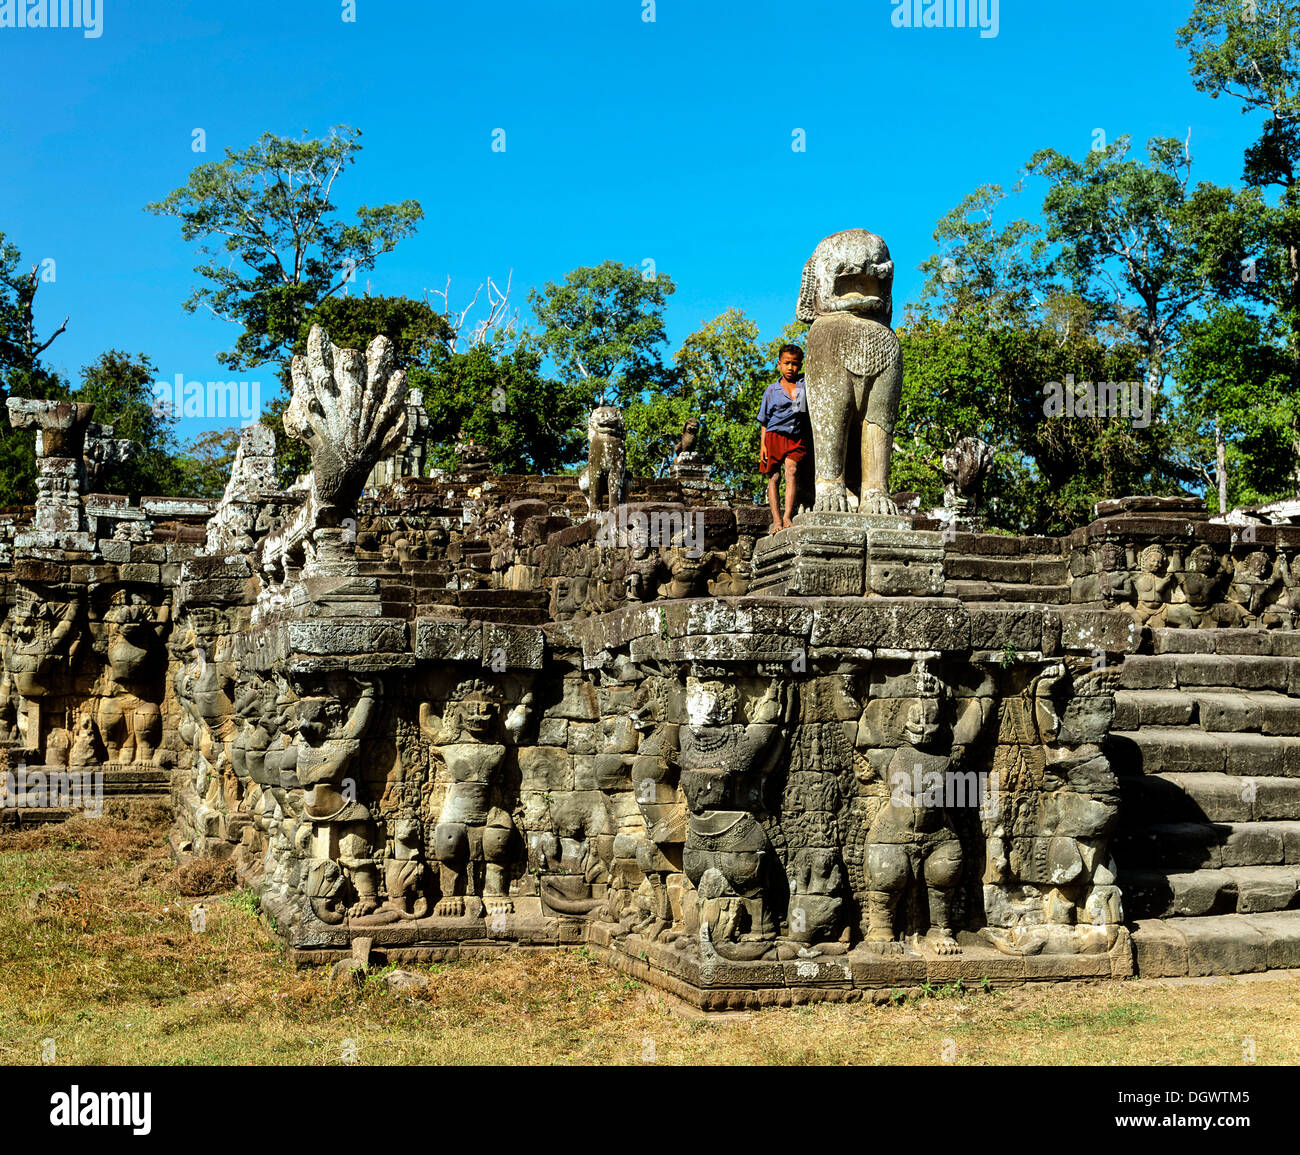 Boy on the Terrace of the Elephants, wall-reliefs with garudas and lions at the Royal Palace, Angkor Thom, Siem Reap Province - Stock Image